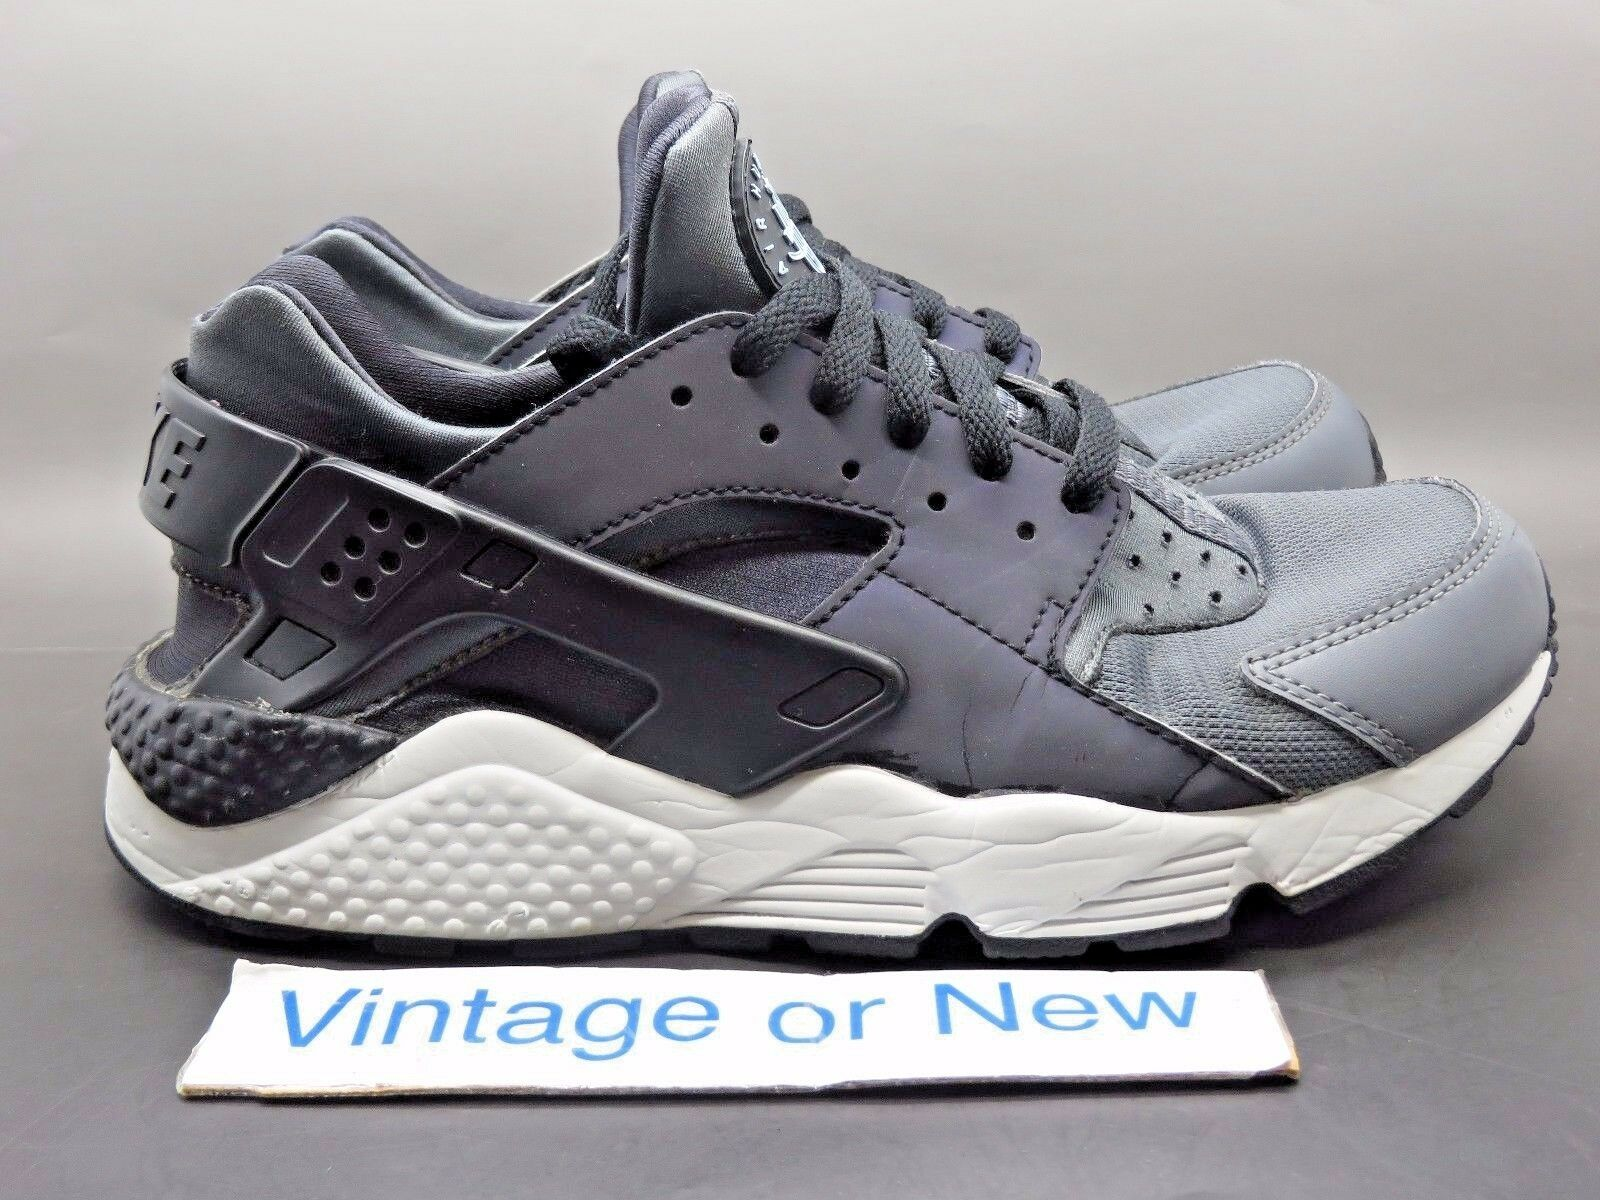 Men's Nike Air Huarache PRM Dark Grey Black Running shoes sz 8.5